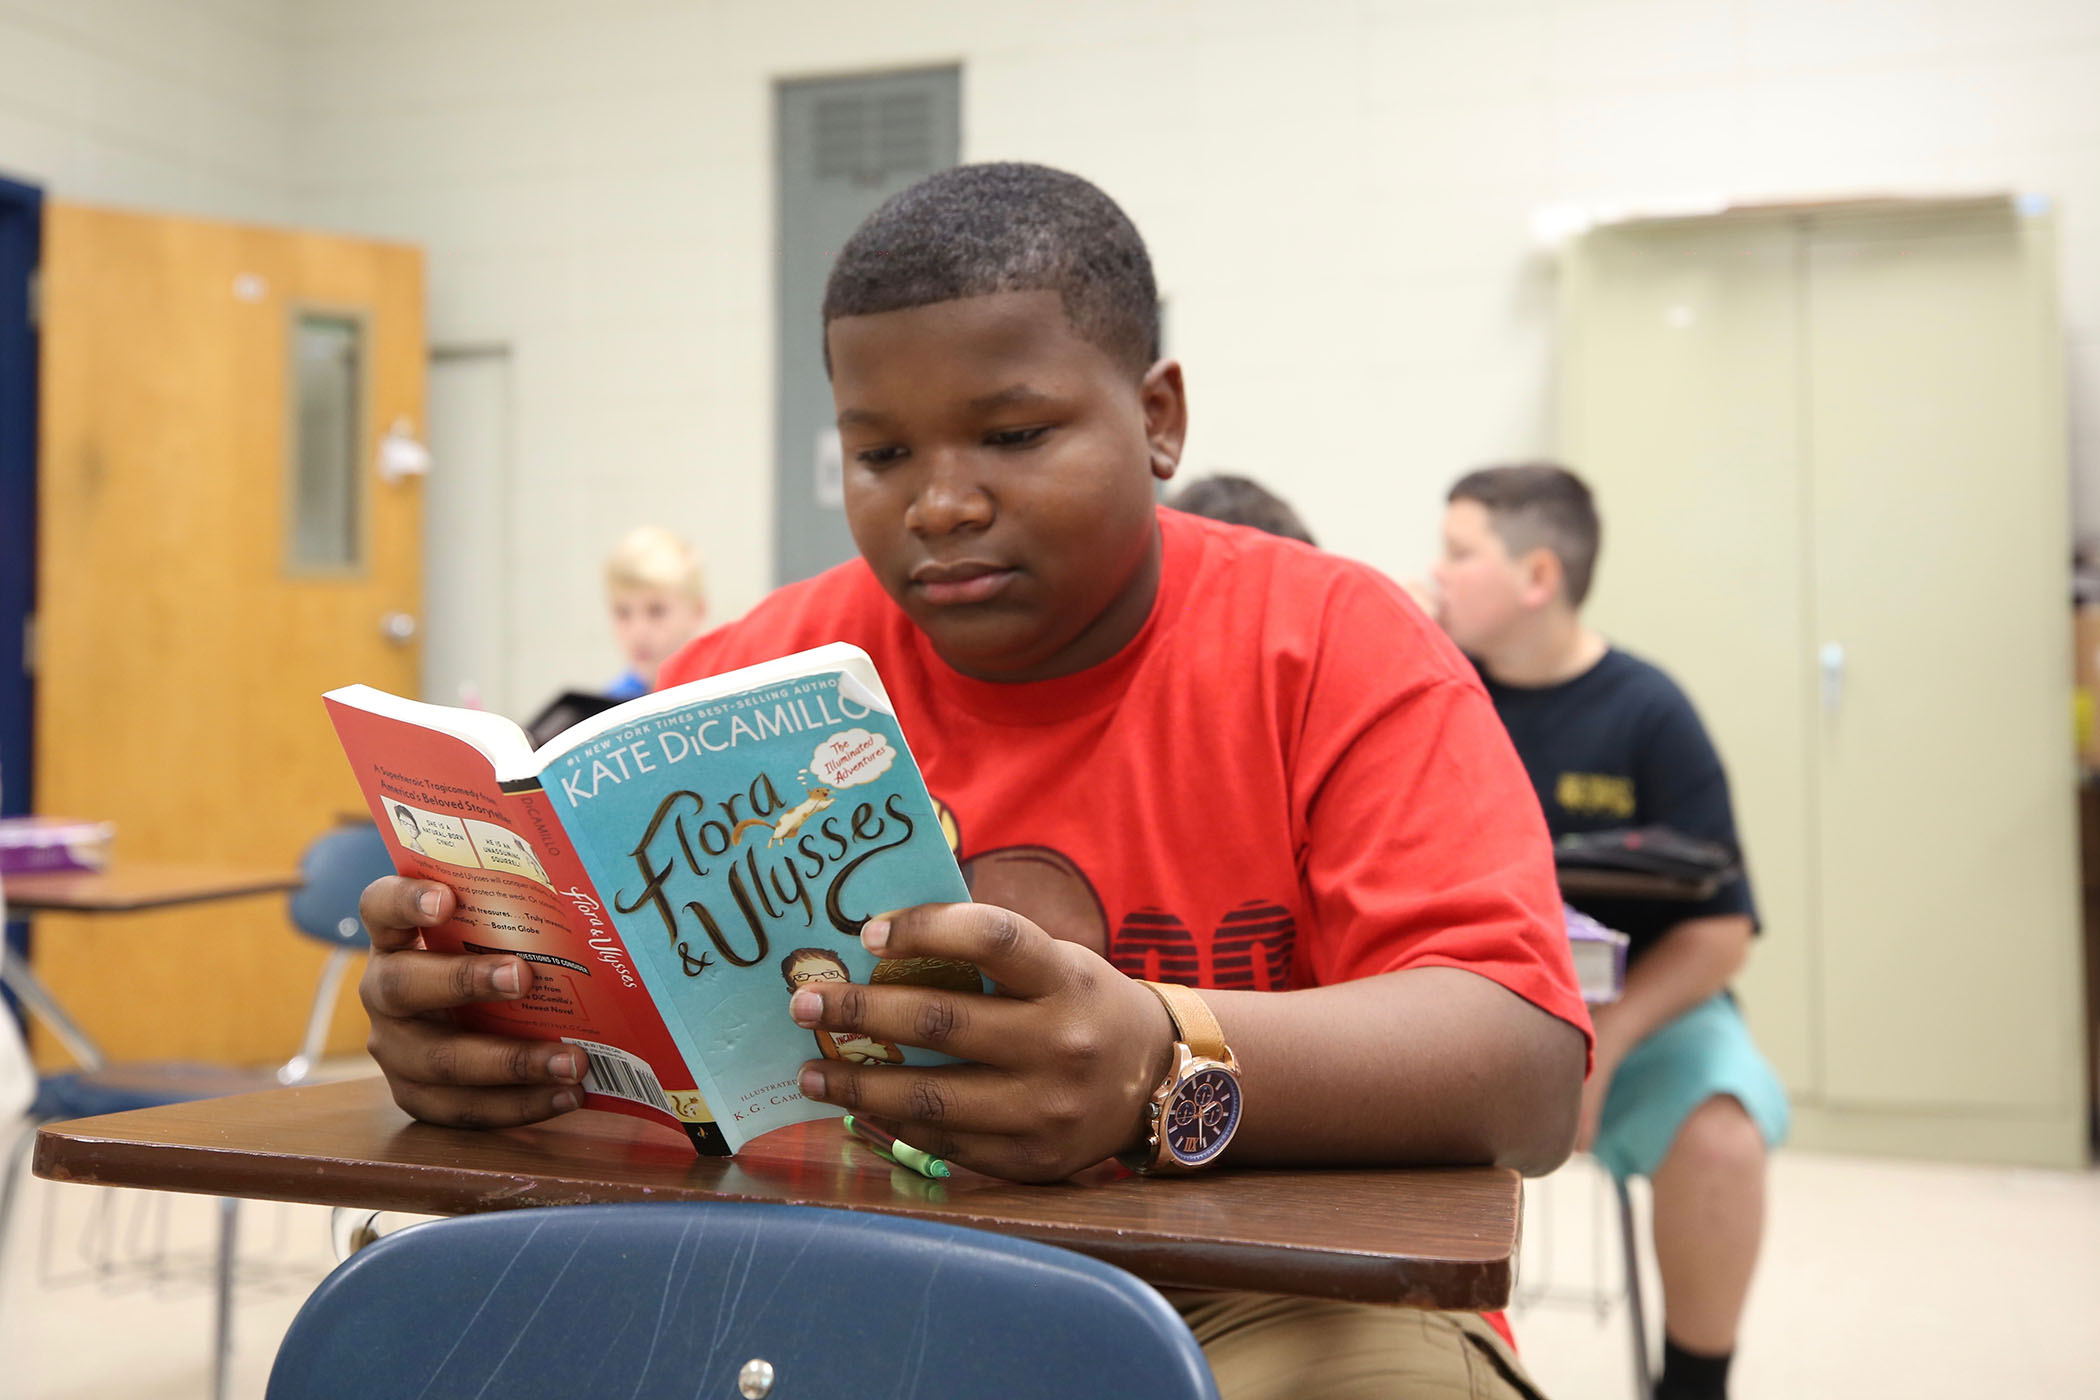 A student reads Flora & Ulysses.